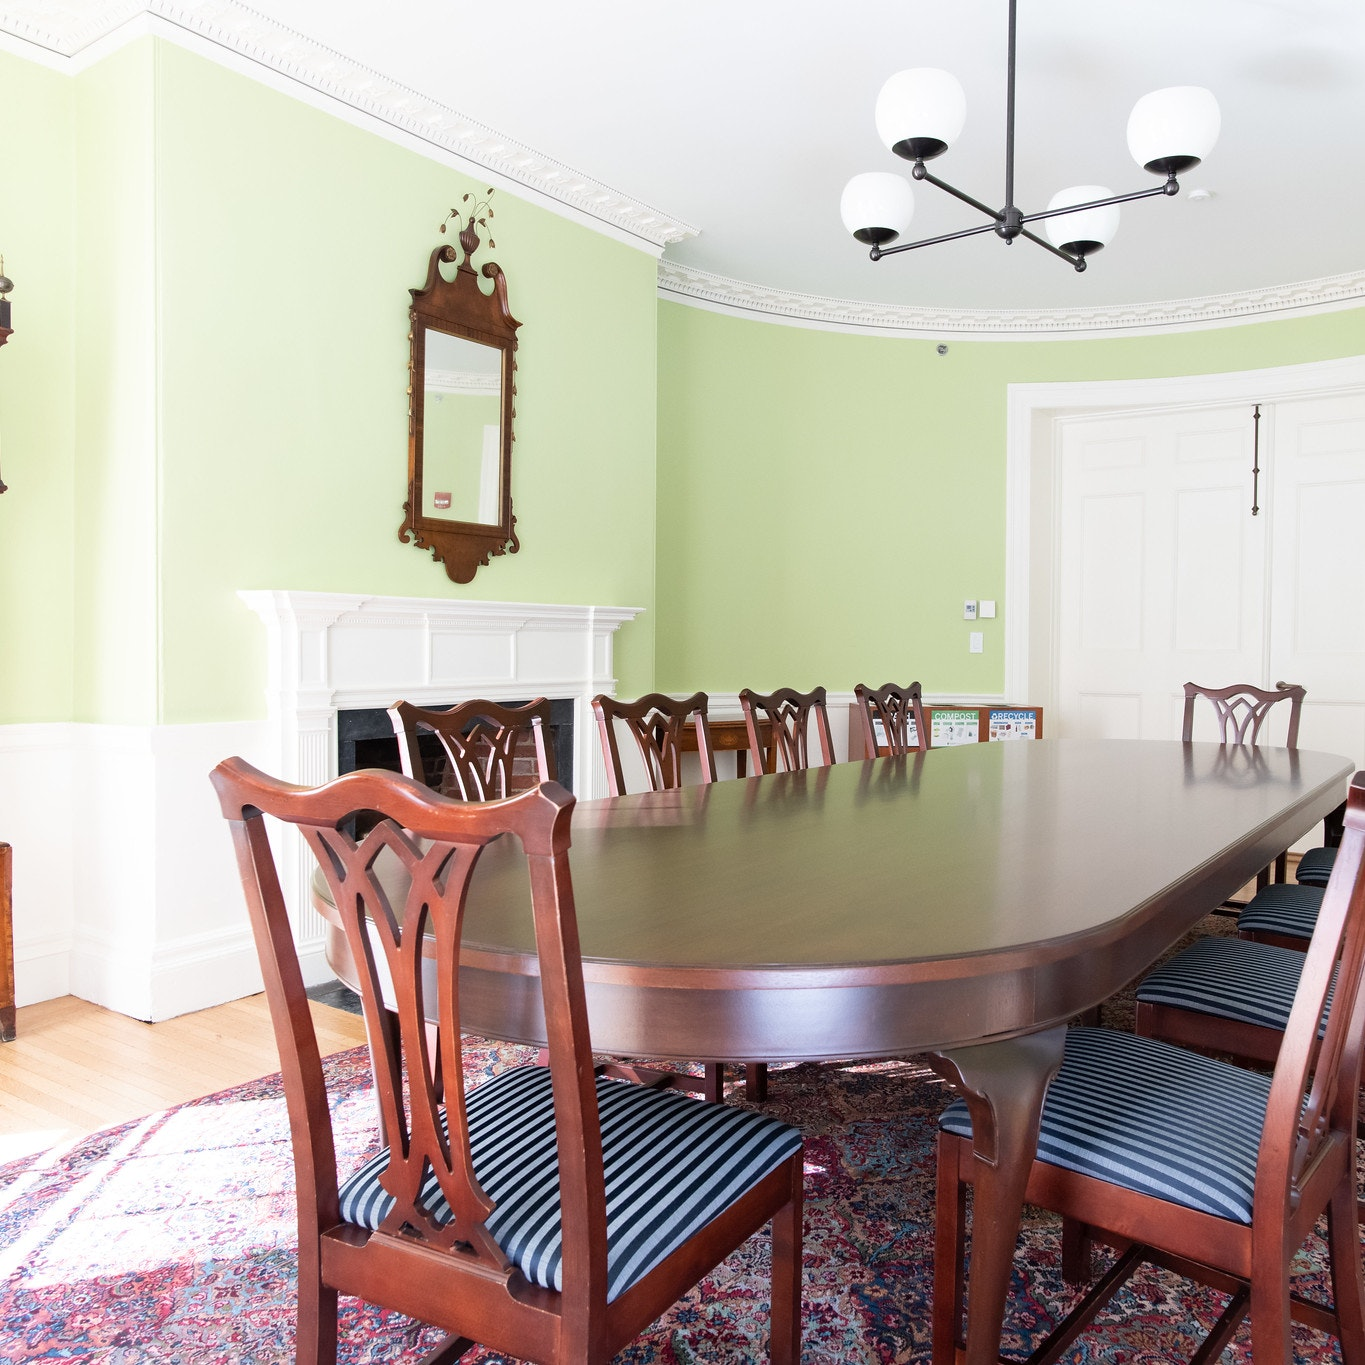 Another angle of the Gardiner Room, Conference table with 10 seats lined around table. Grandfather clock in the left corner of room. White, double door entrance on the other end of the conference table.